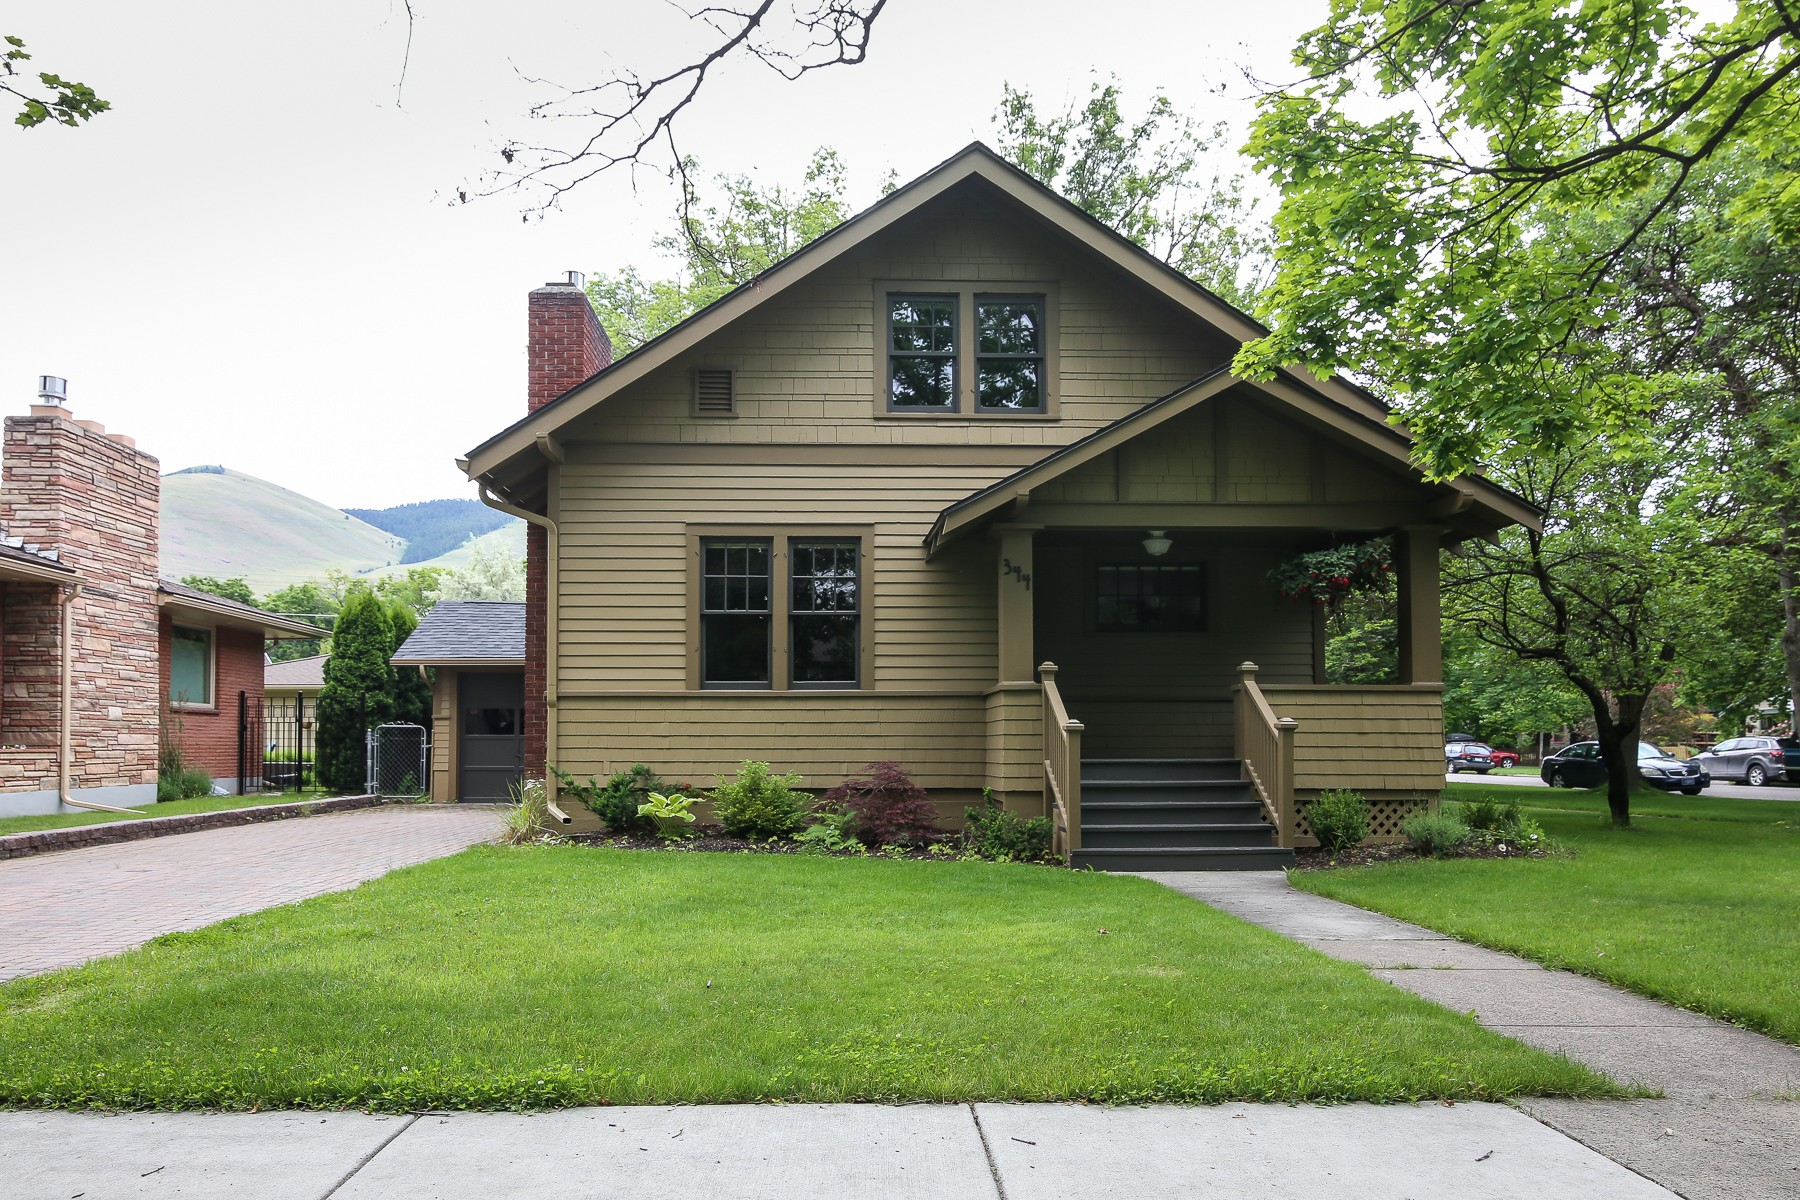 Additional photo for property listing at 344 Blaine St , Missoula, MT 59801 344  Blaine St Missoula, Montana 59801 United States